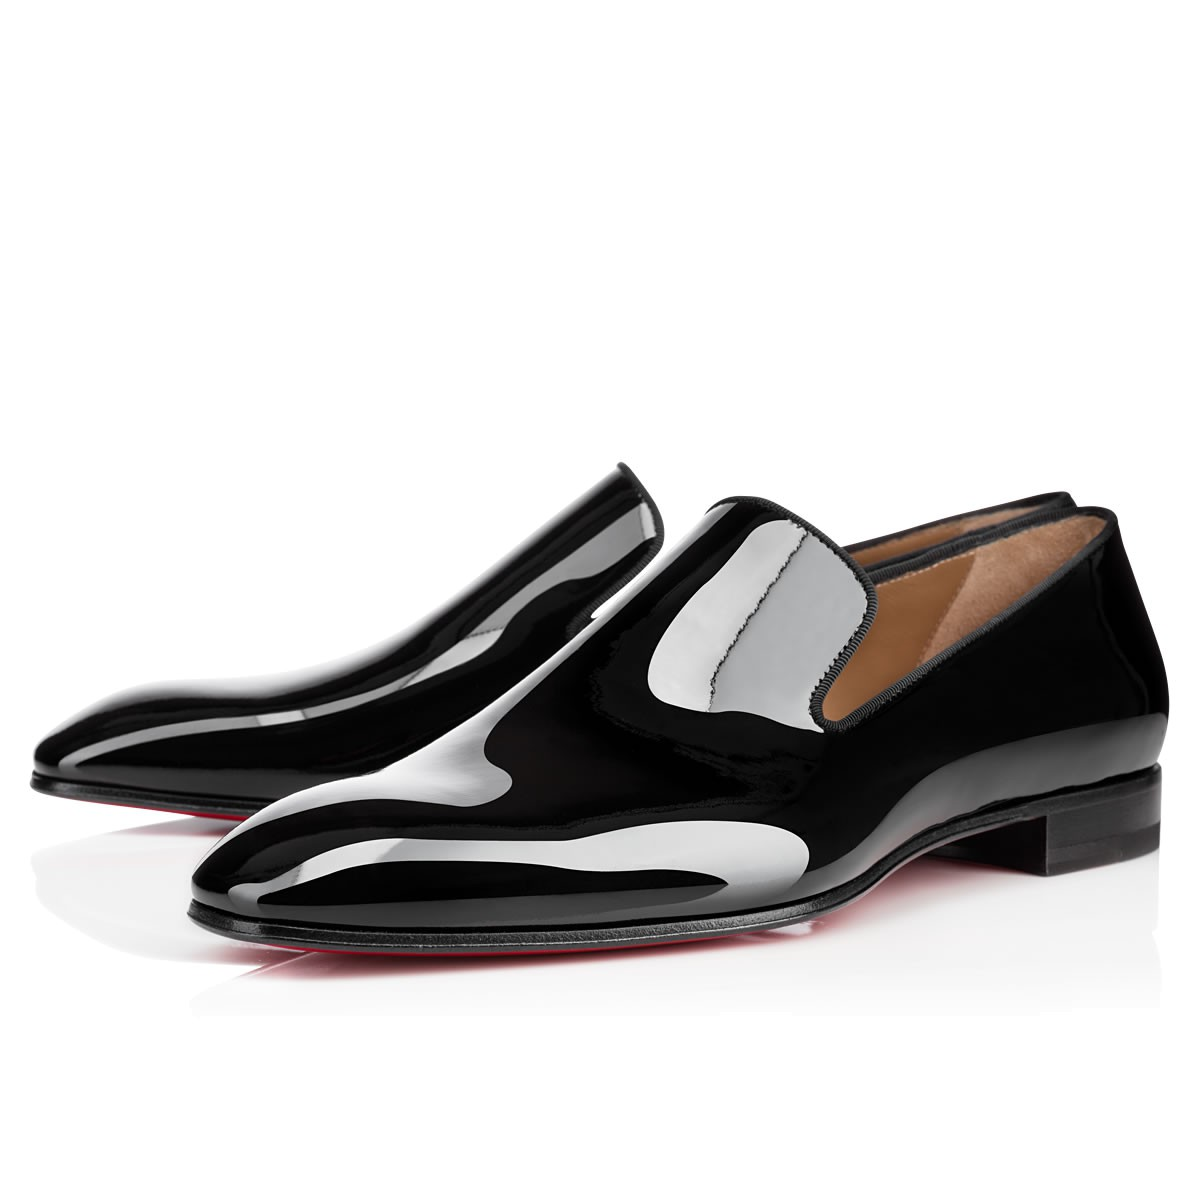 black patent shoes men shoes - dandelion patent - christian louboutin ... pqarqdb